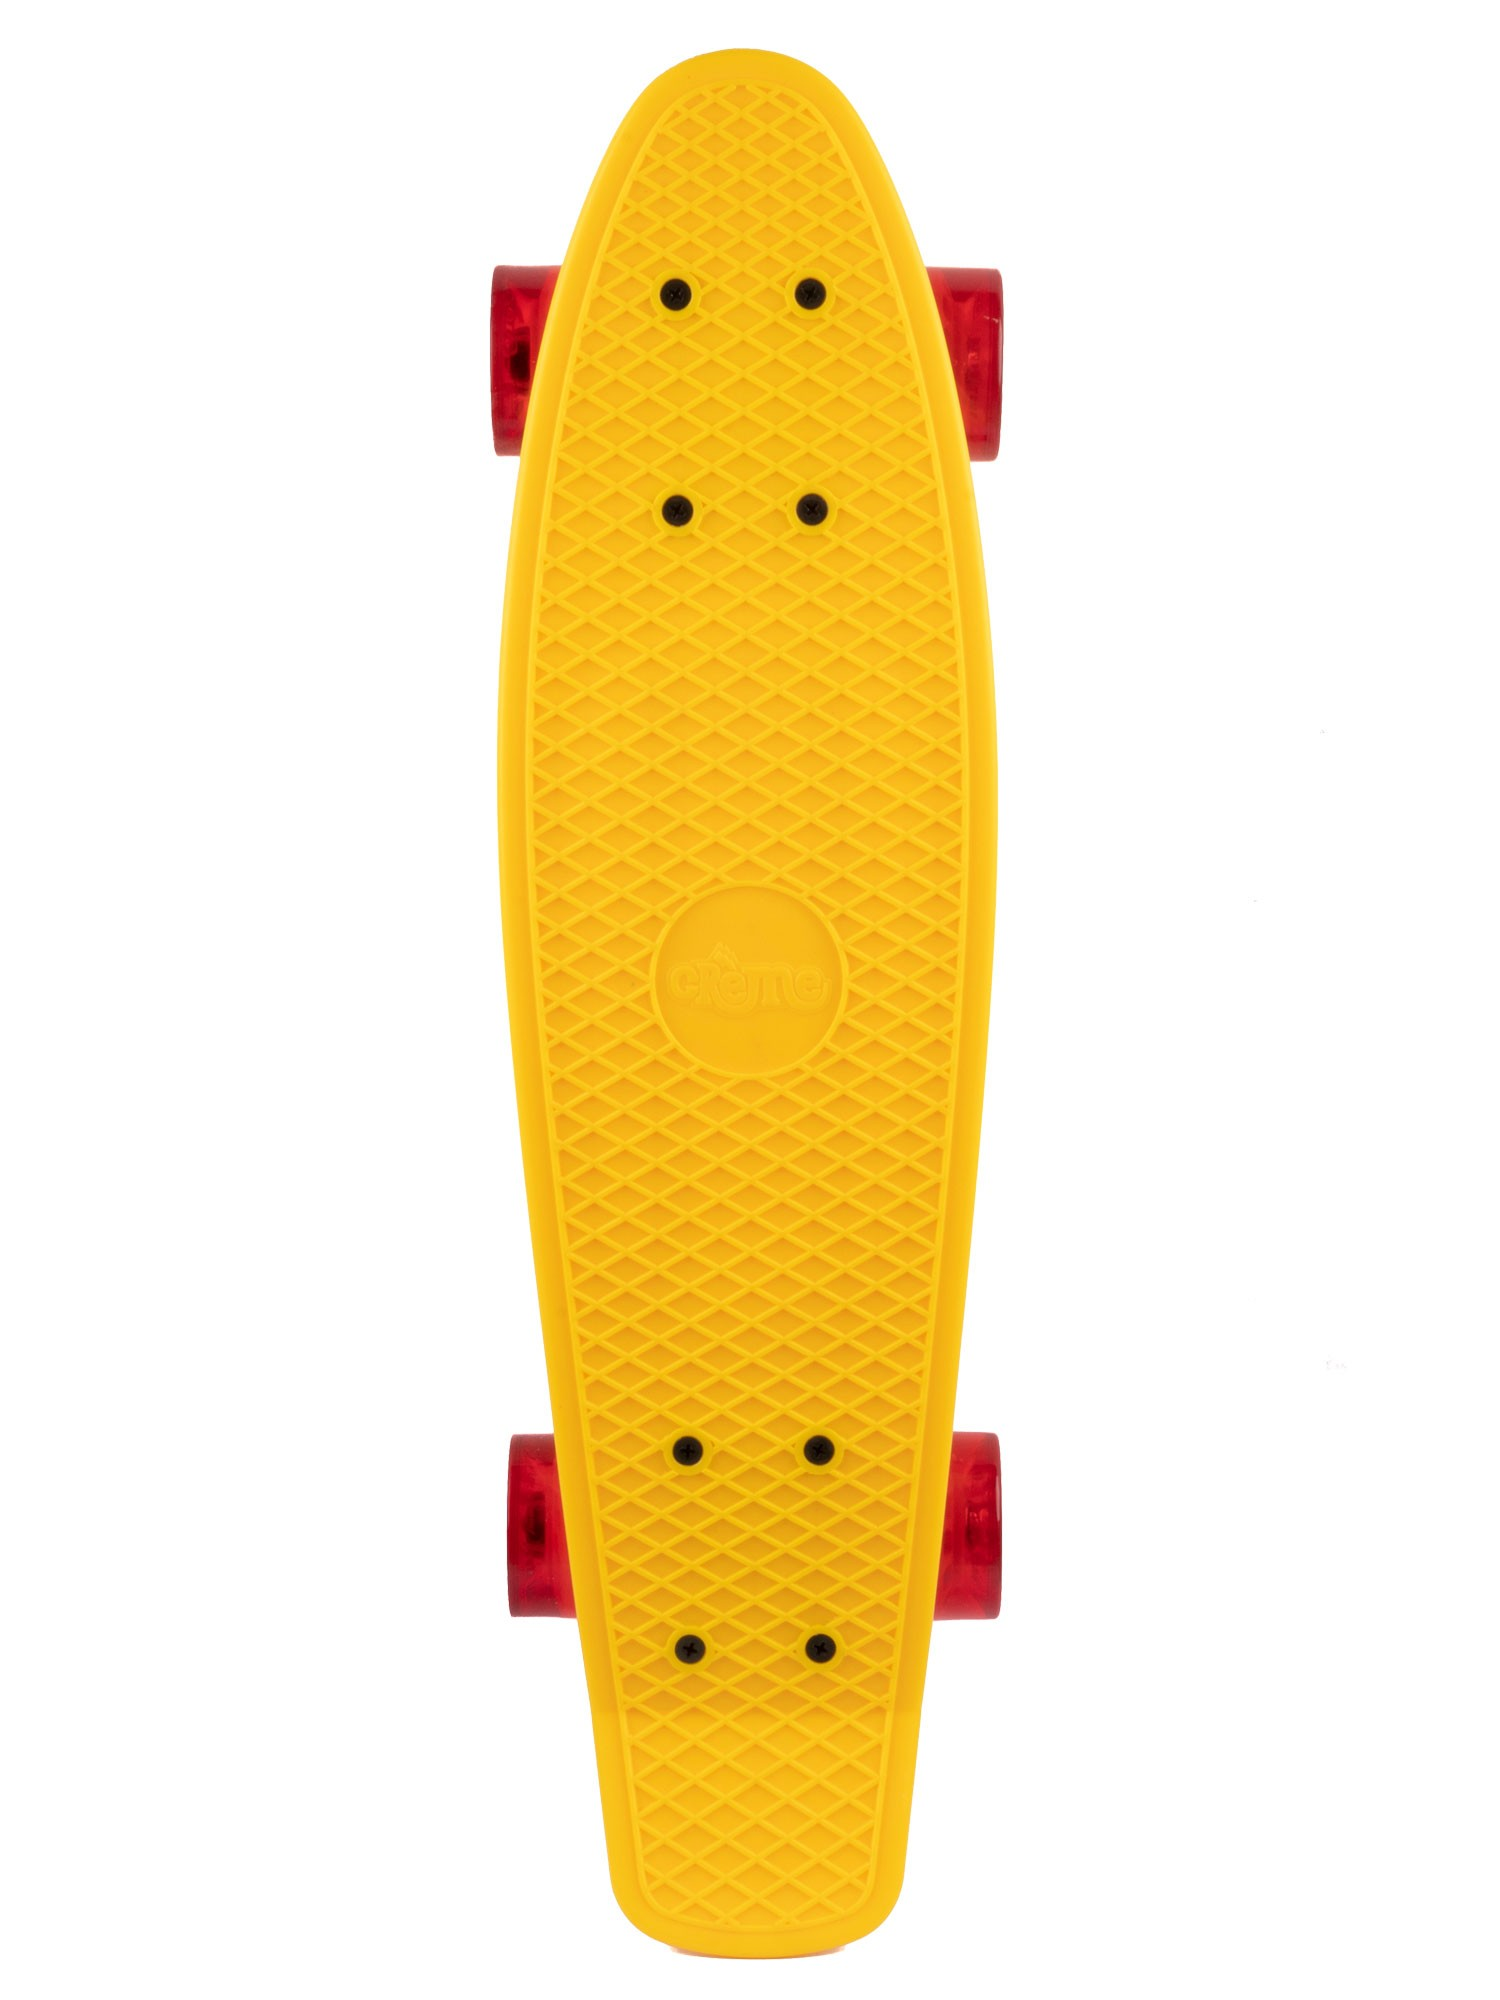 MINI CRUISER CREME 5.8 YELLOW